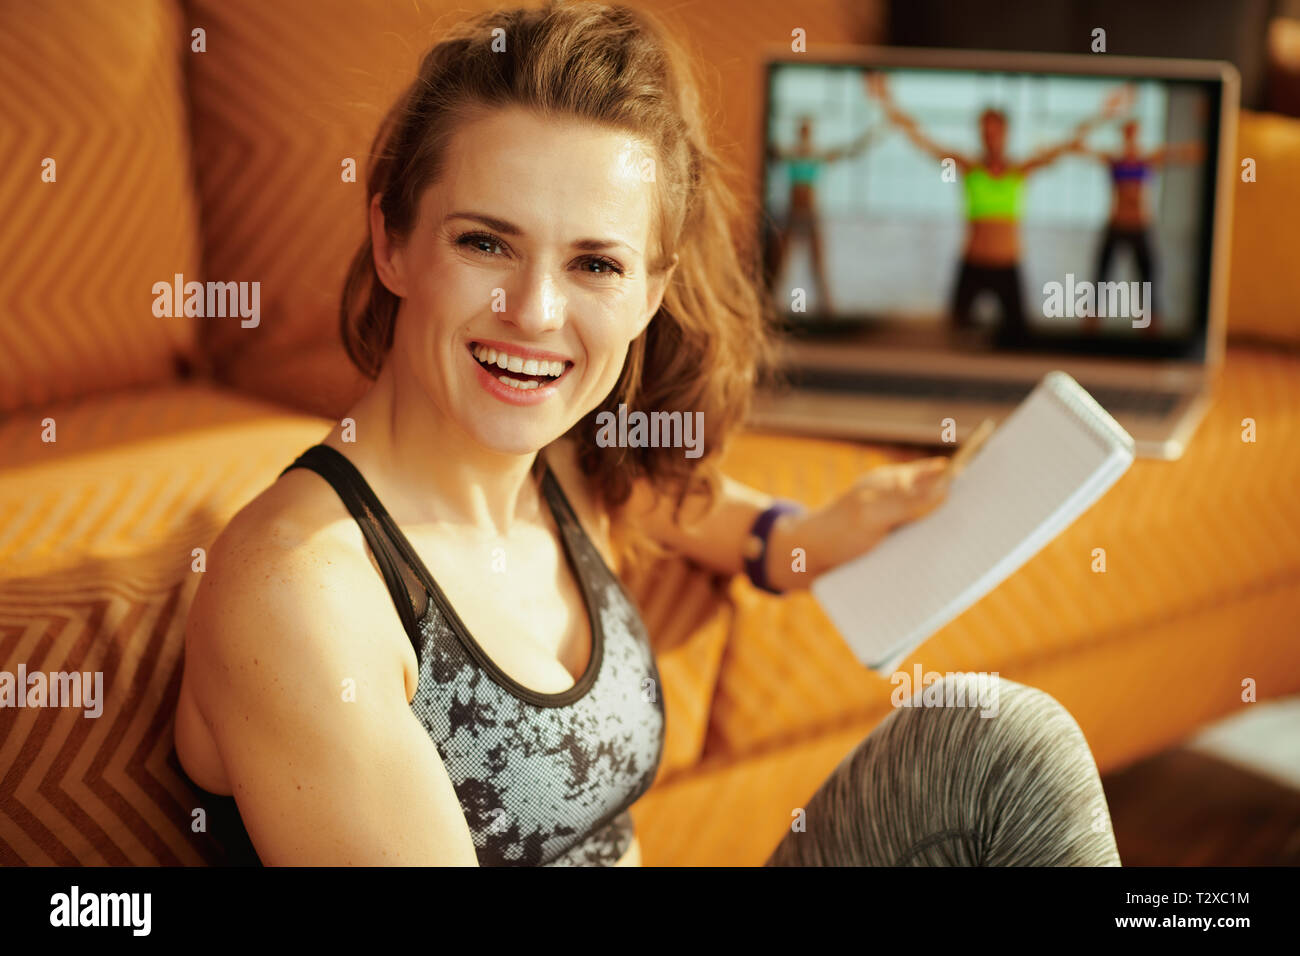 happy active woman in fitness clothes with notepad and pen taking notes while watching fitness tutorial on internet via laptop at modern home. Stock Photo